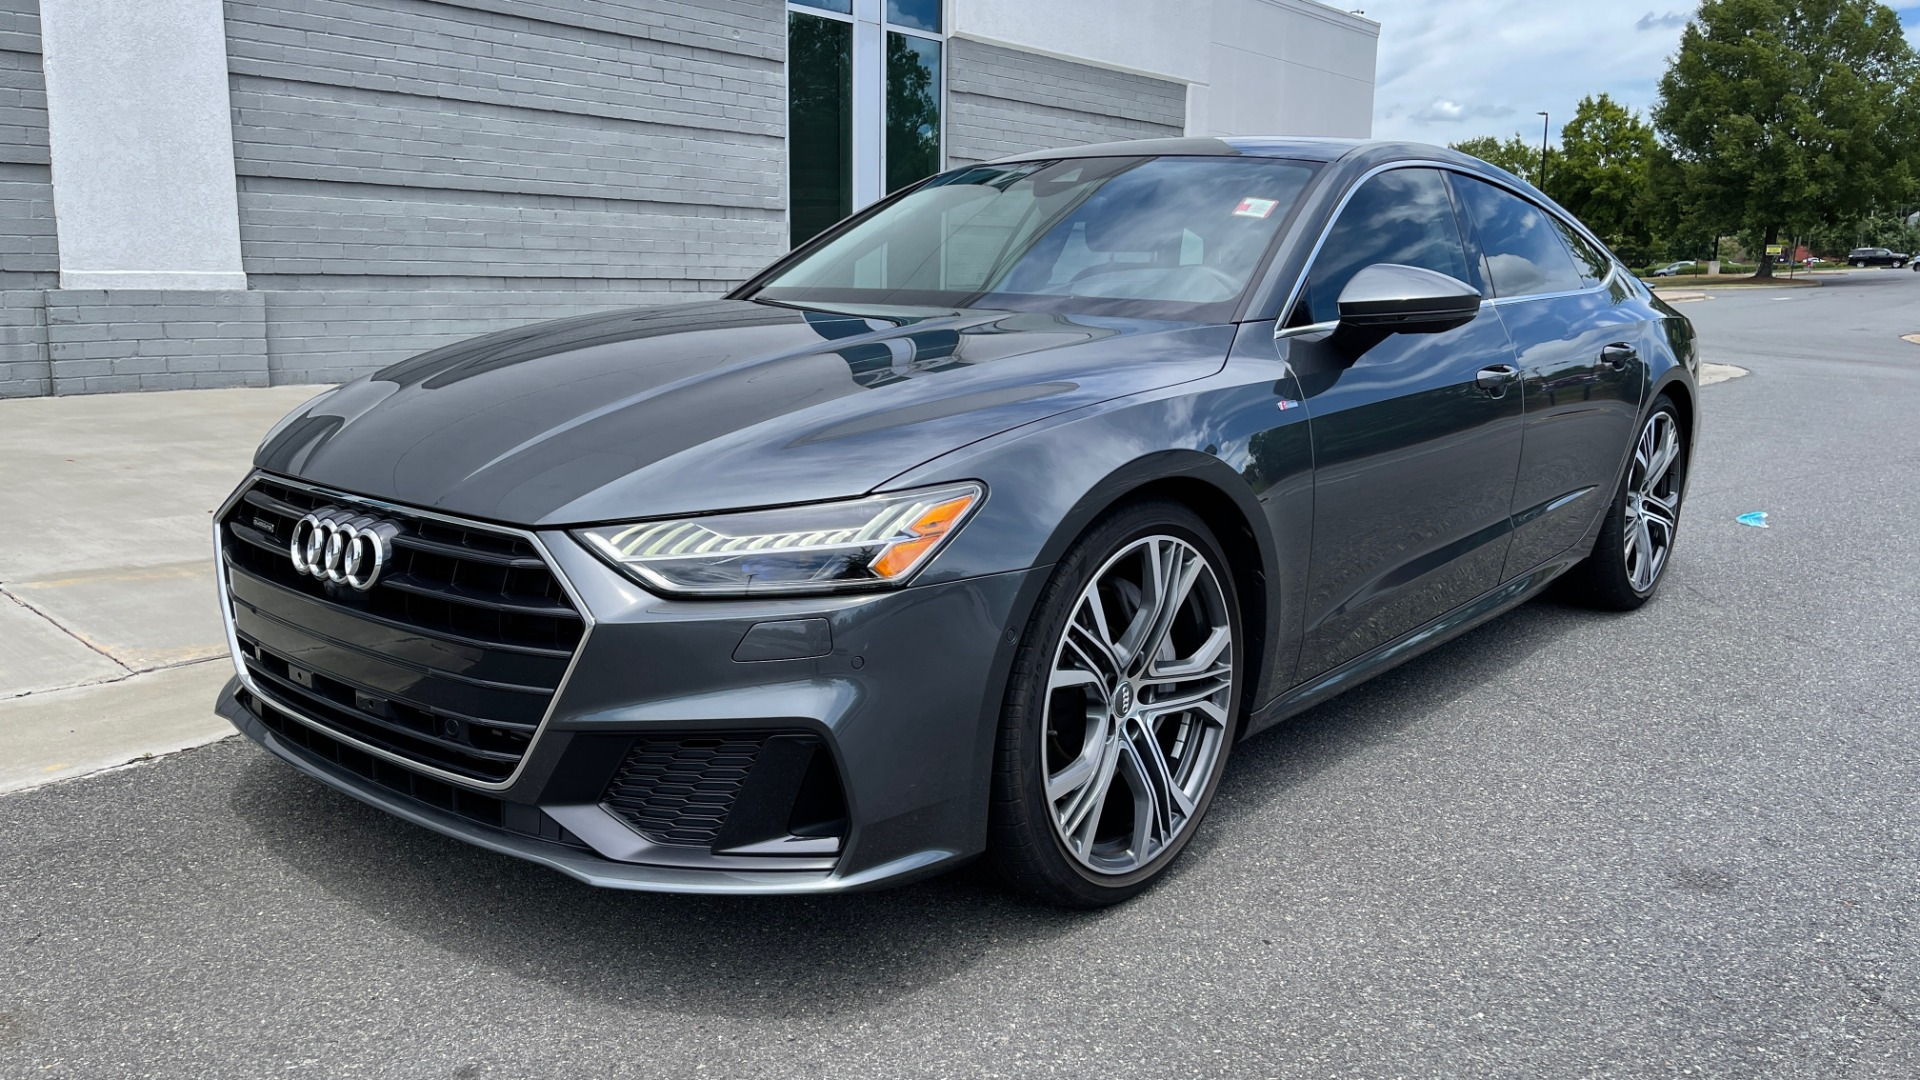 Used 2019 Audi A7 PRESTIGE 55 TFSI 3.0T / NAV / B&O SND / SUNROOF / S-LINE / 21IN WHLS / REAR for sale $66,995 at Formula Imports in Charlotte NC 28227 3